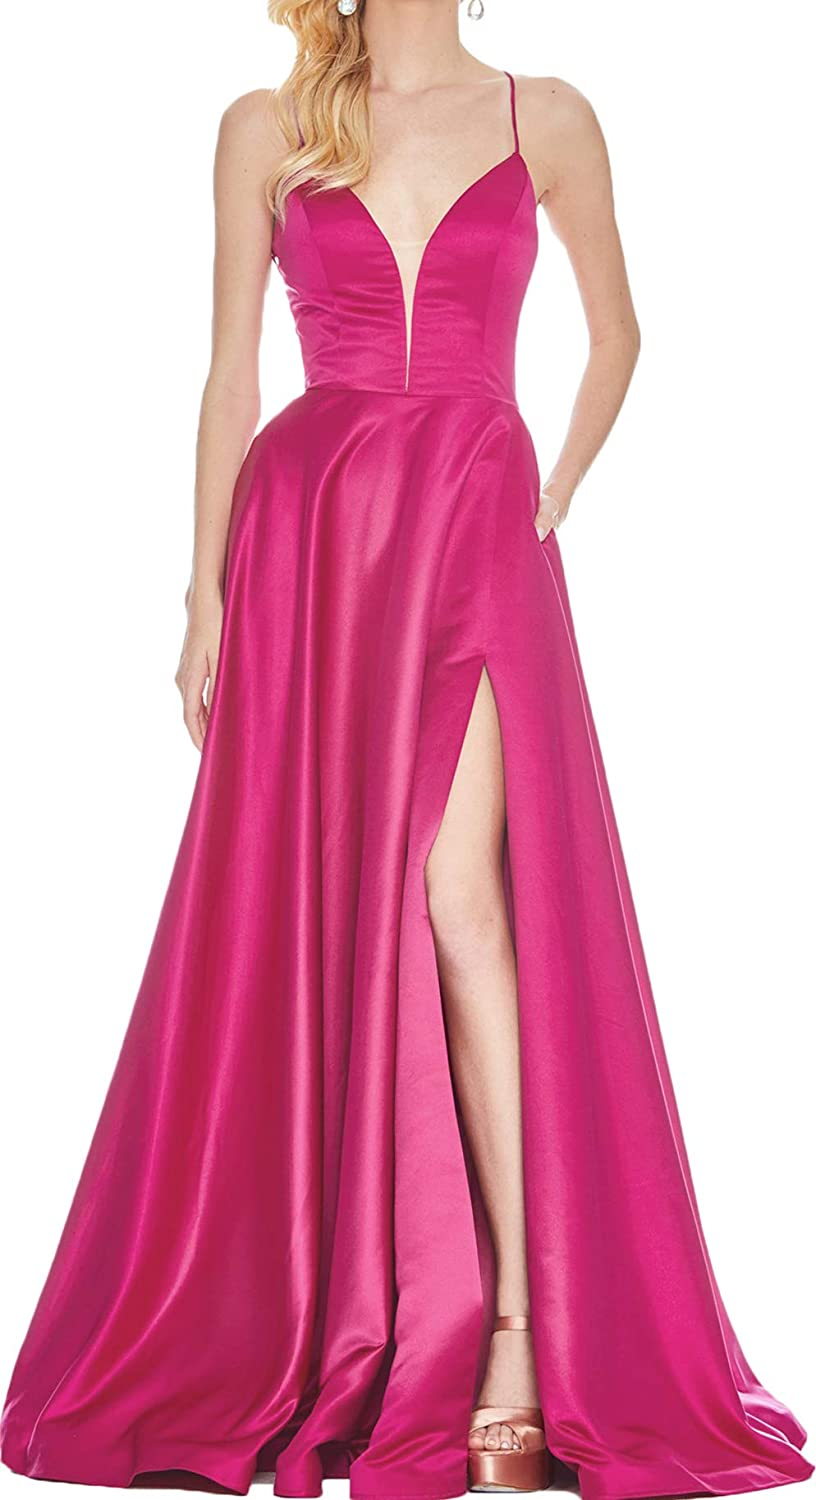 Hot Pink Rmaytiked Womens V Neck Spaghetti Strap Prom Dresses Long Side Slit Backless Formal Evening Ball Gowns with Pockets